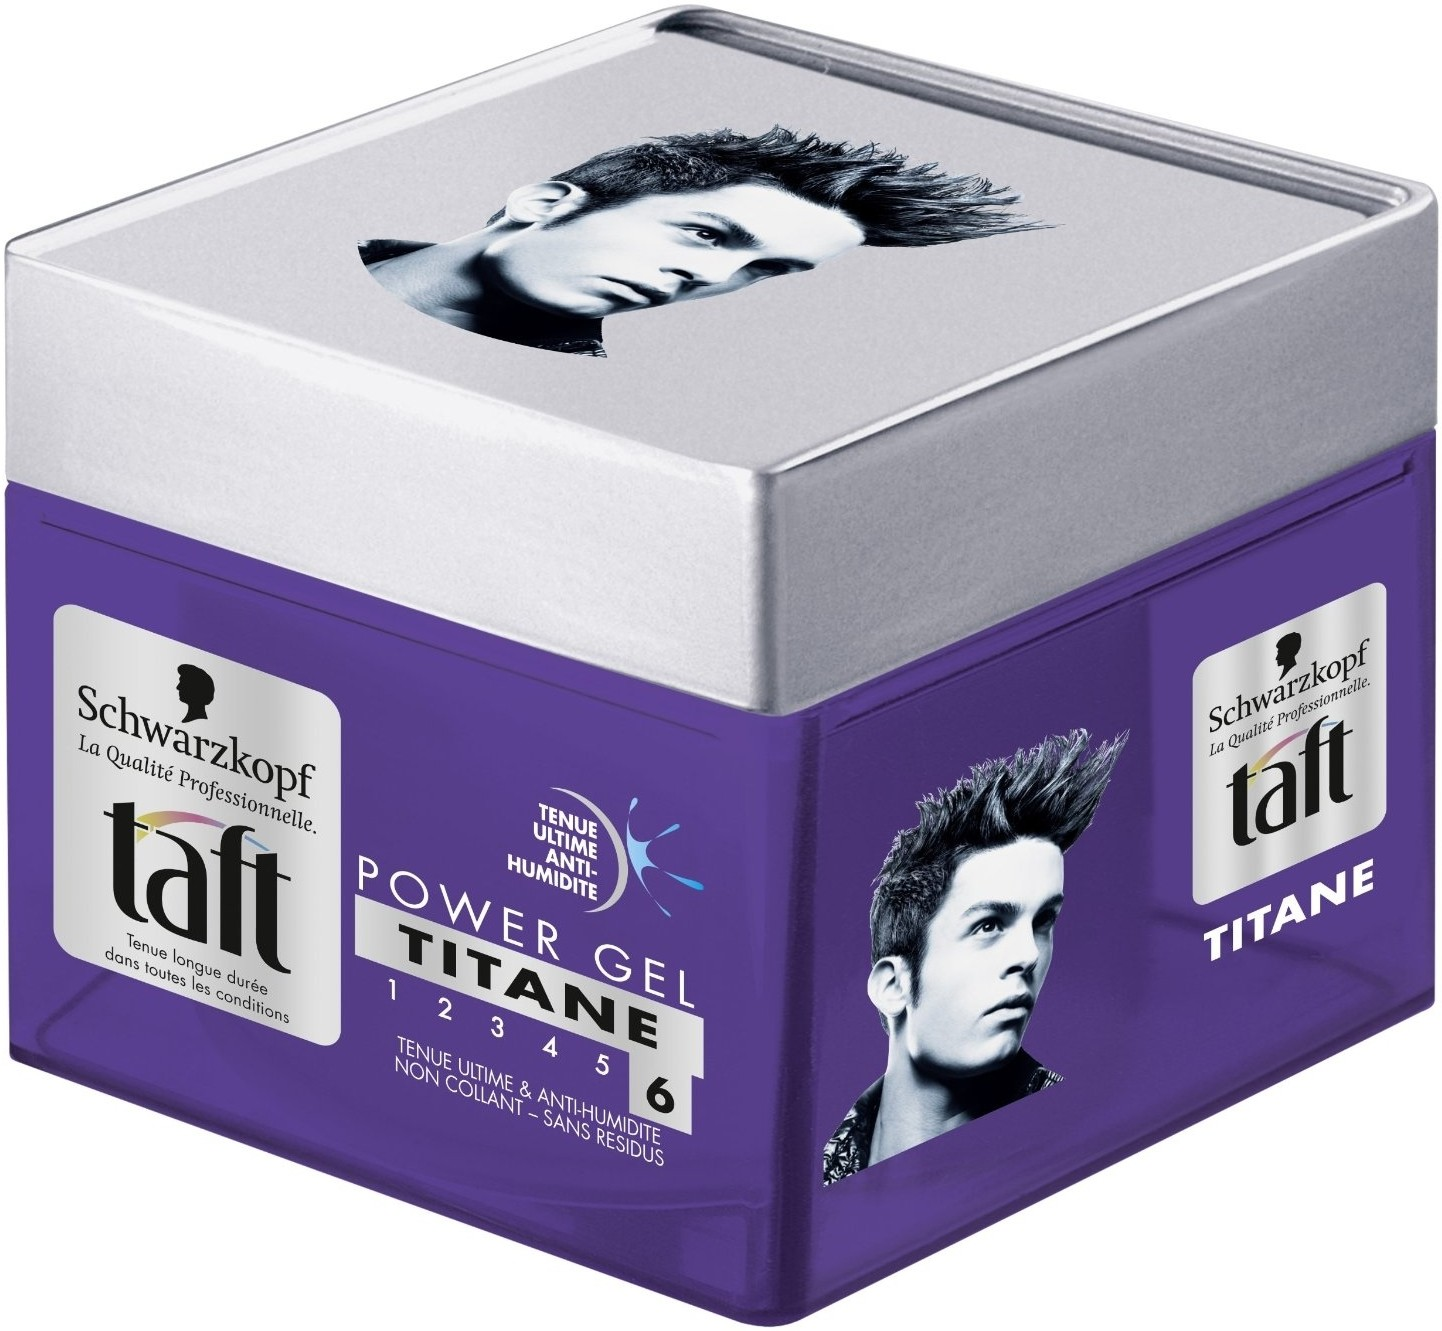 schwarzkopf professional taft power gel titane 6 hair